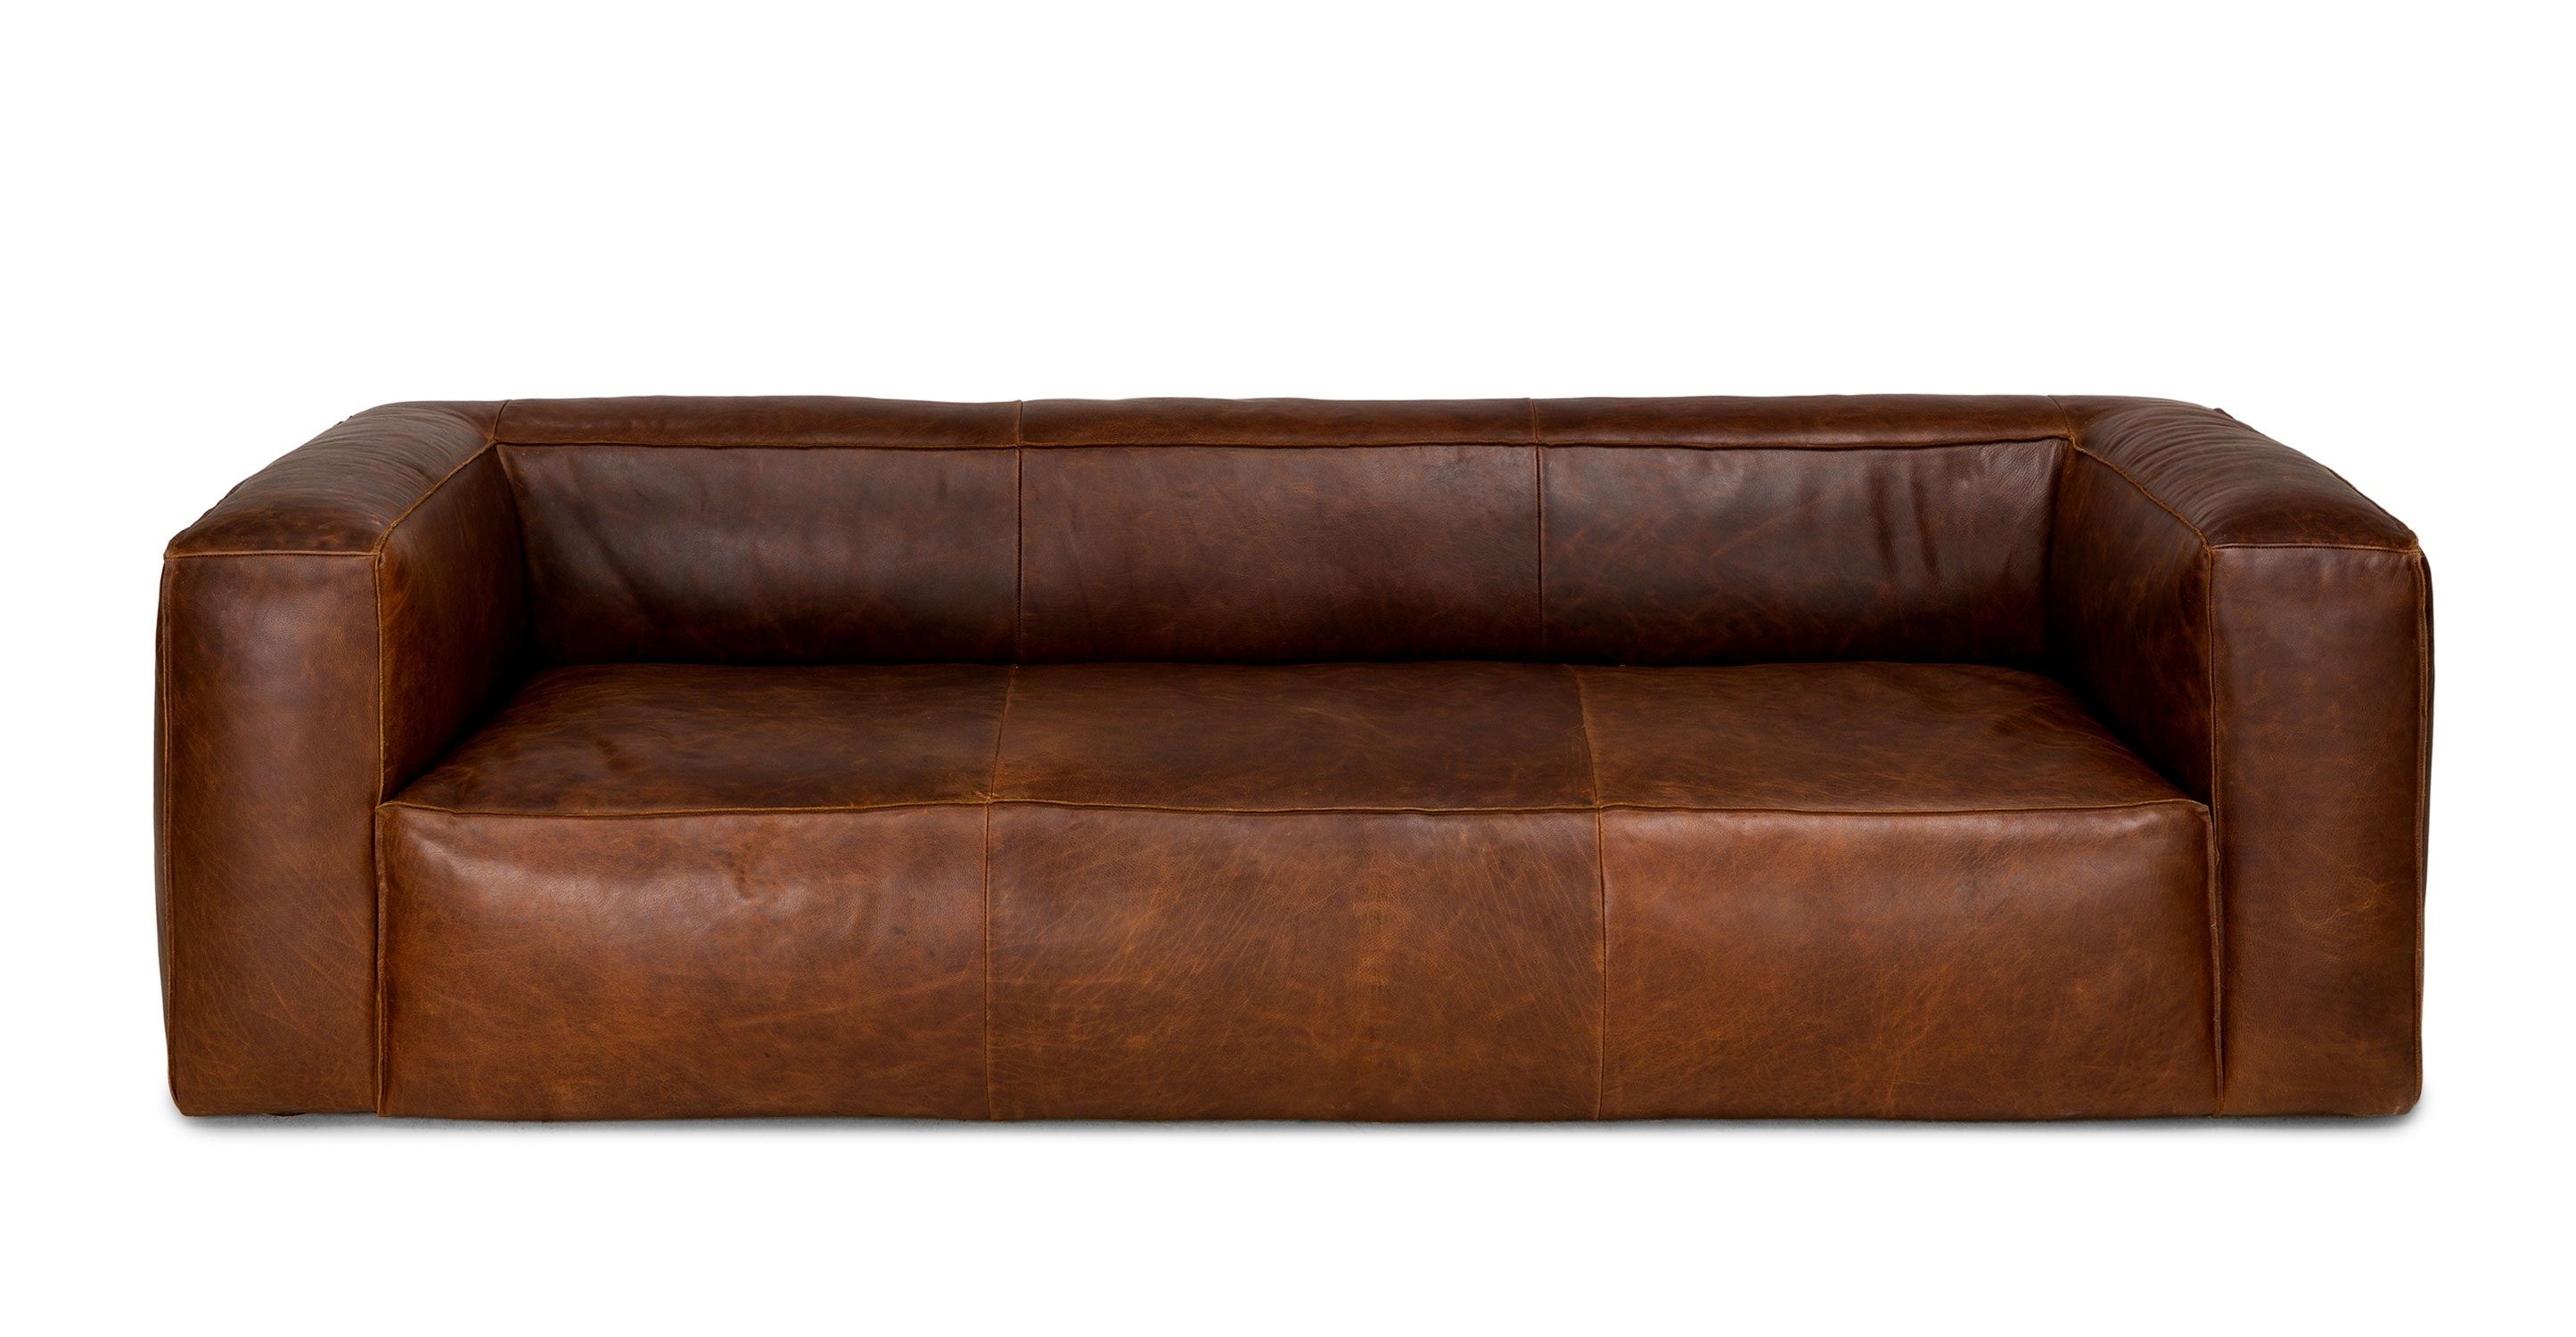 Brown Sofa, Italian Leather, Upholstered | Article Cigar Modern Pertaining To Caressa Leather Dove Grey Sofa Chairs (Image 3 of 20)